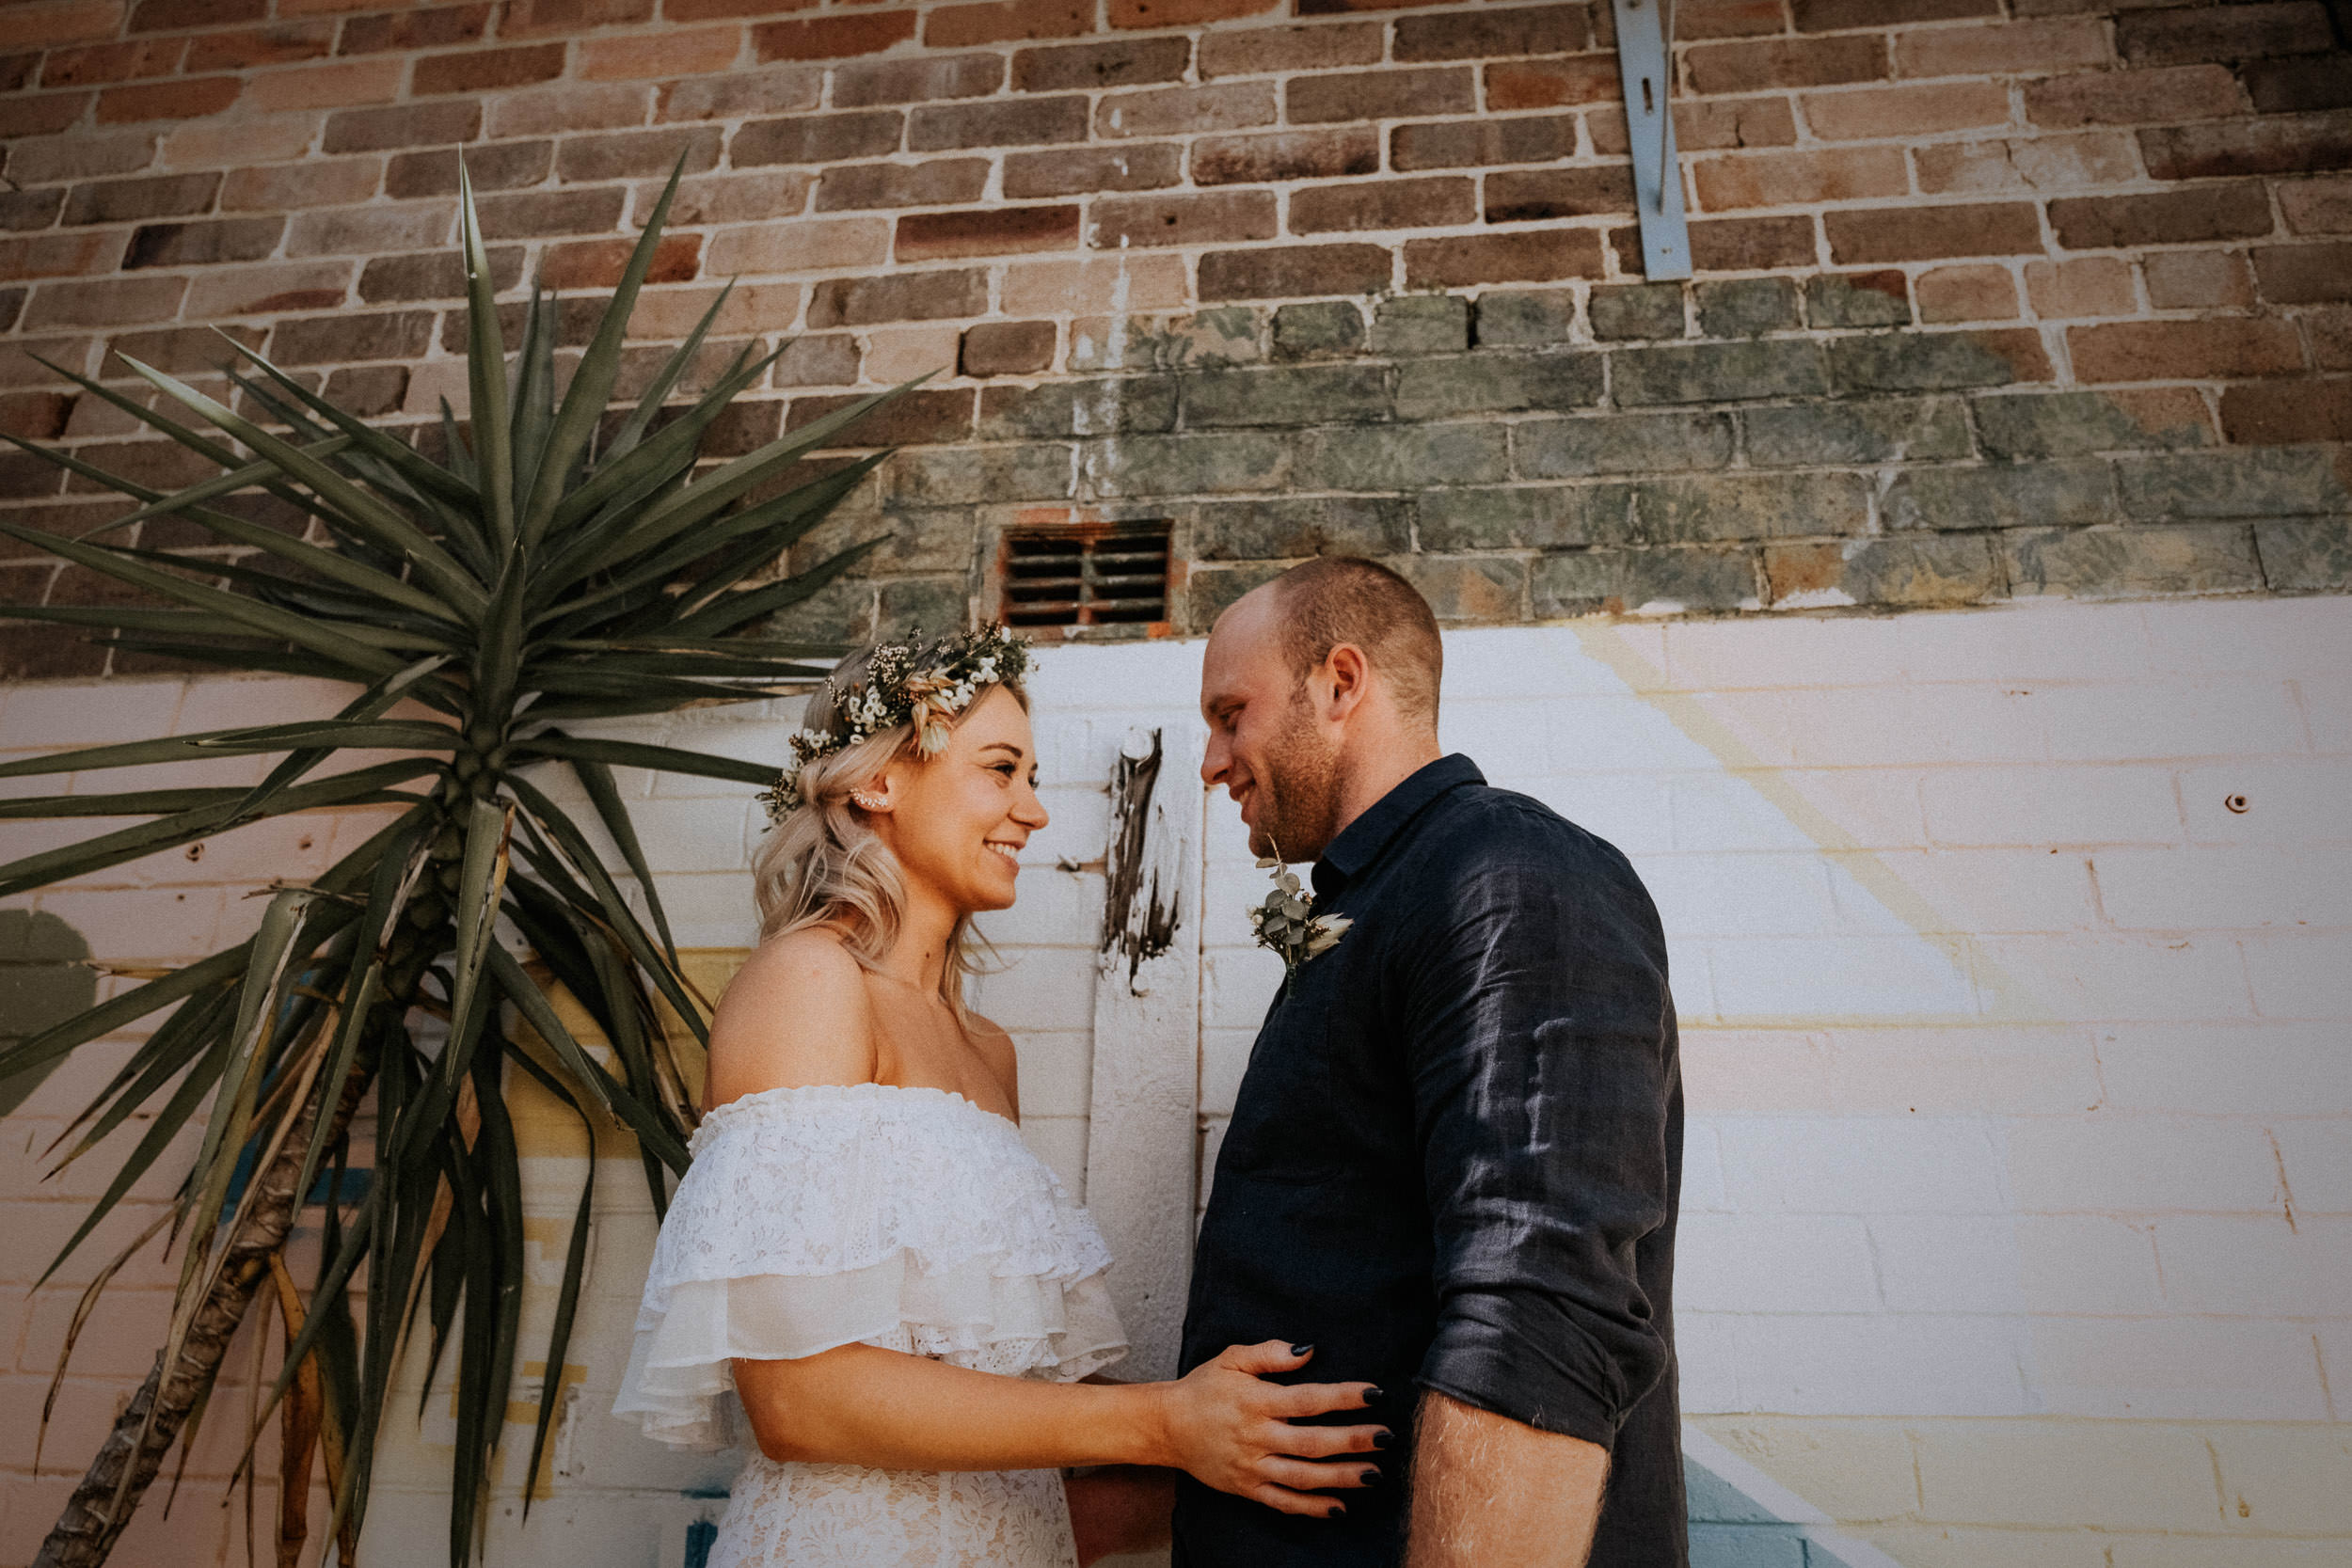 kings _ thieves - beth _ corey backyard airbnb elopement sydney - submission -245.jpg